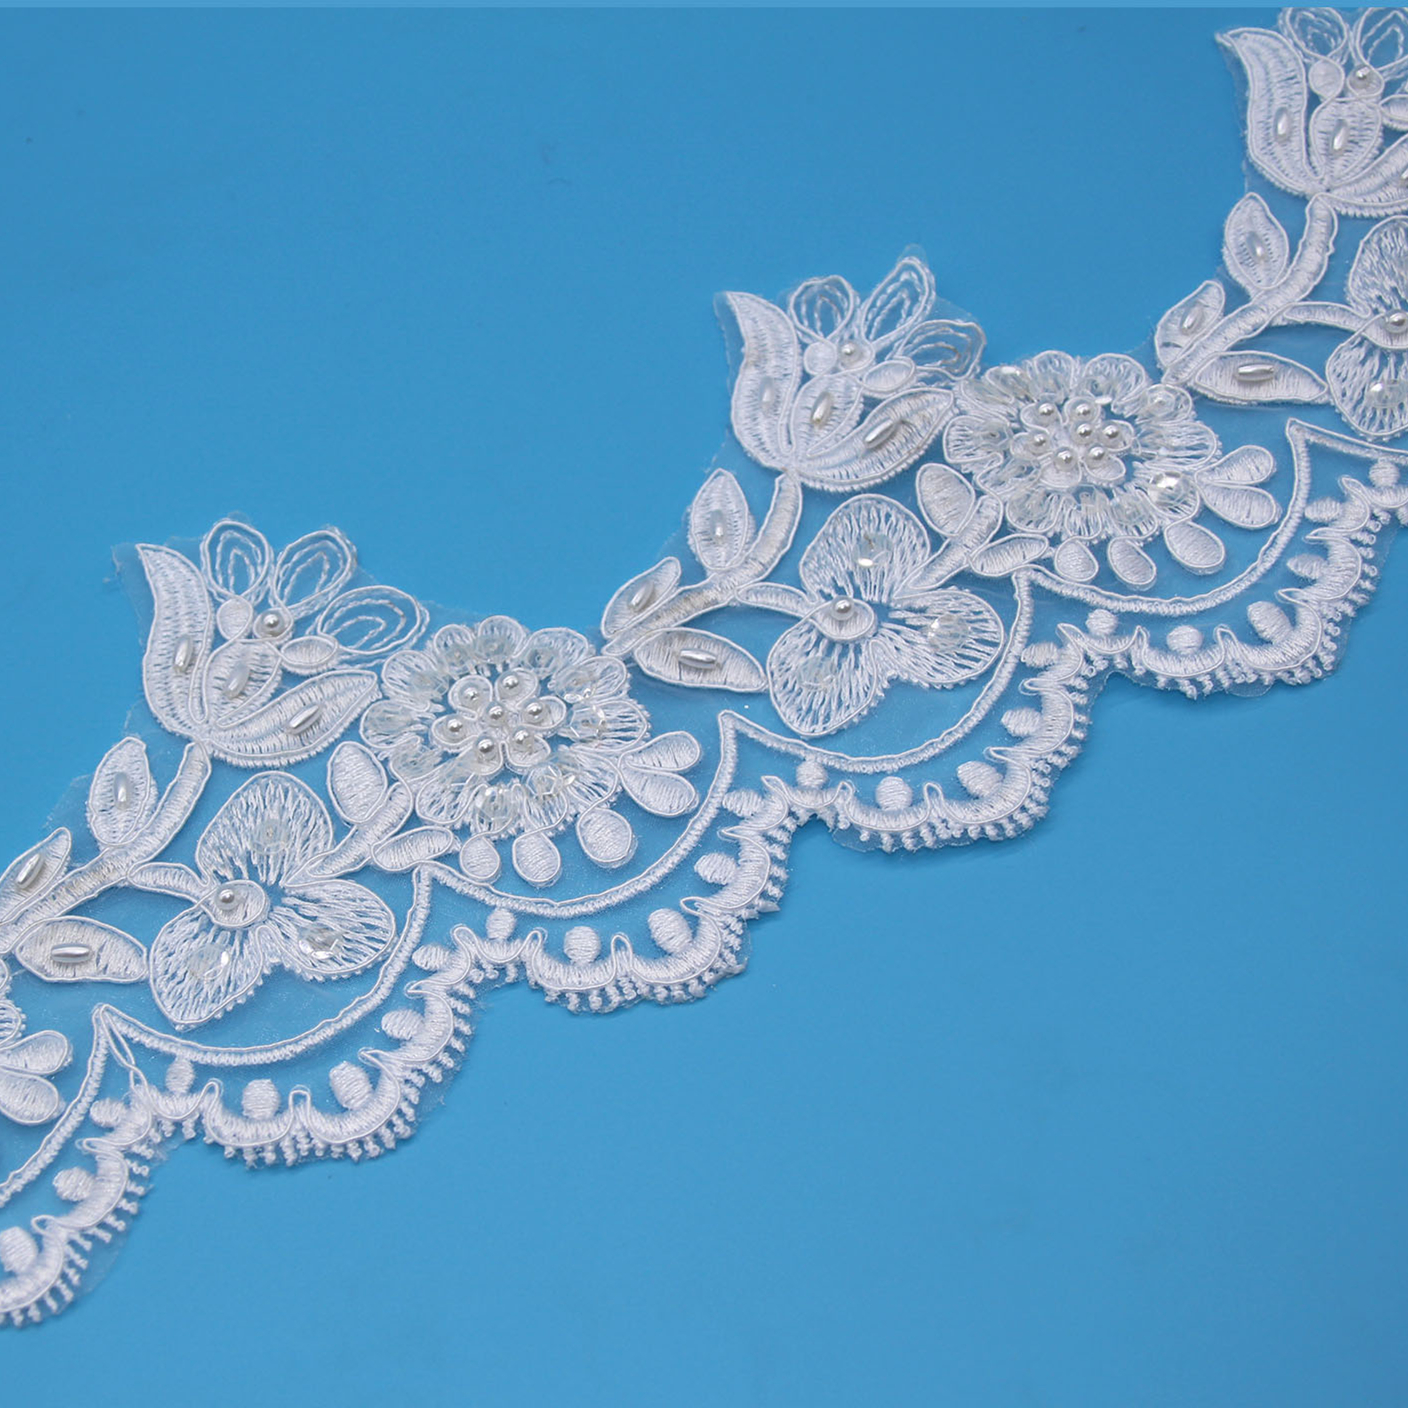 E182B Polyester Decorative Lace White Wedding Lace Trim For DIY Garment Accessories Sewing Trim Wedding Lace